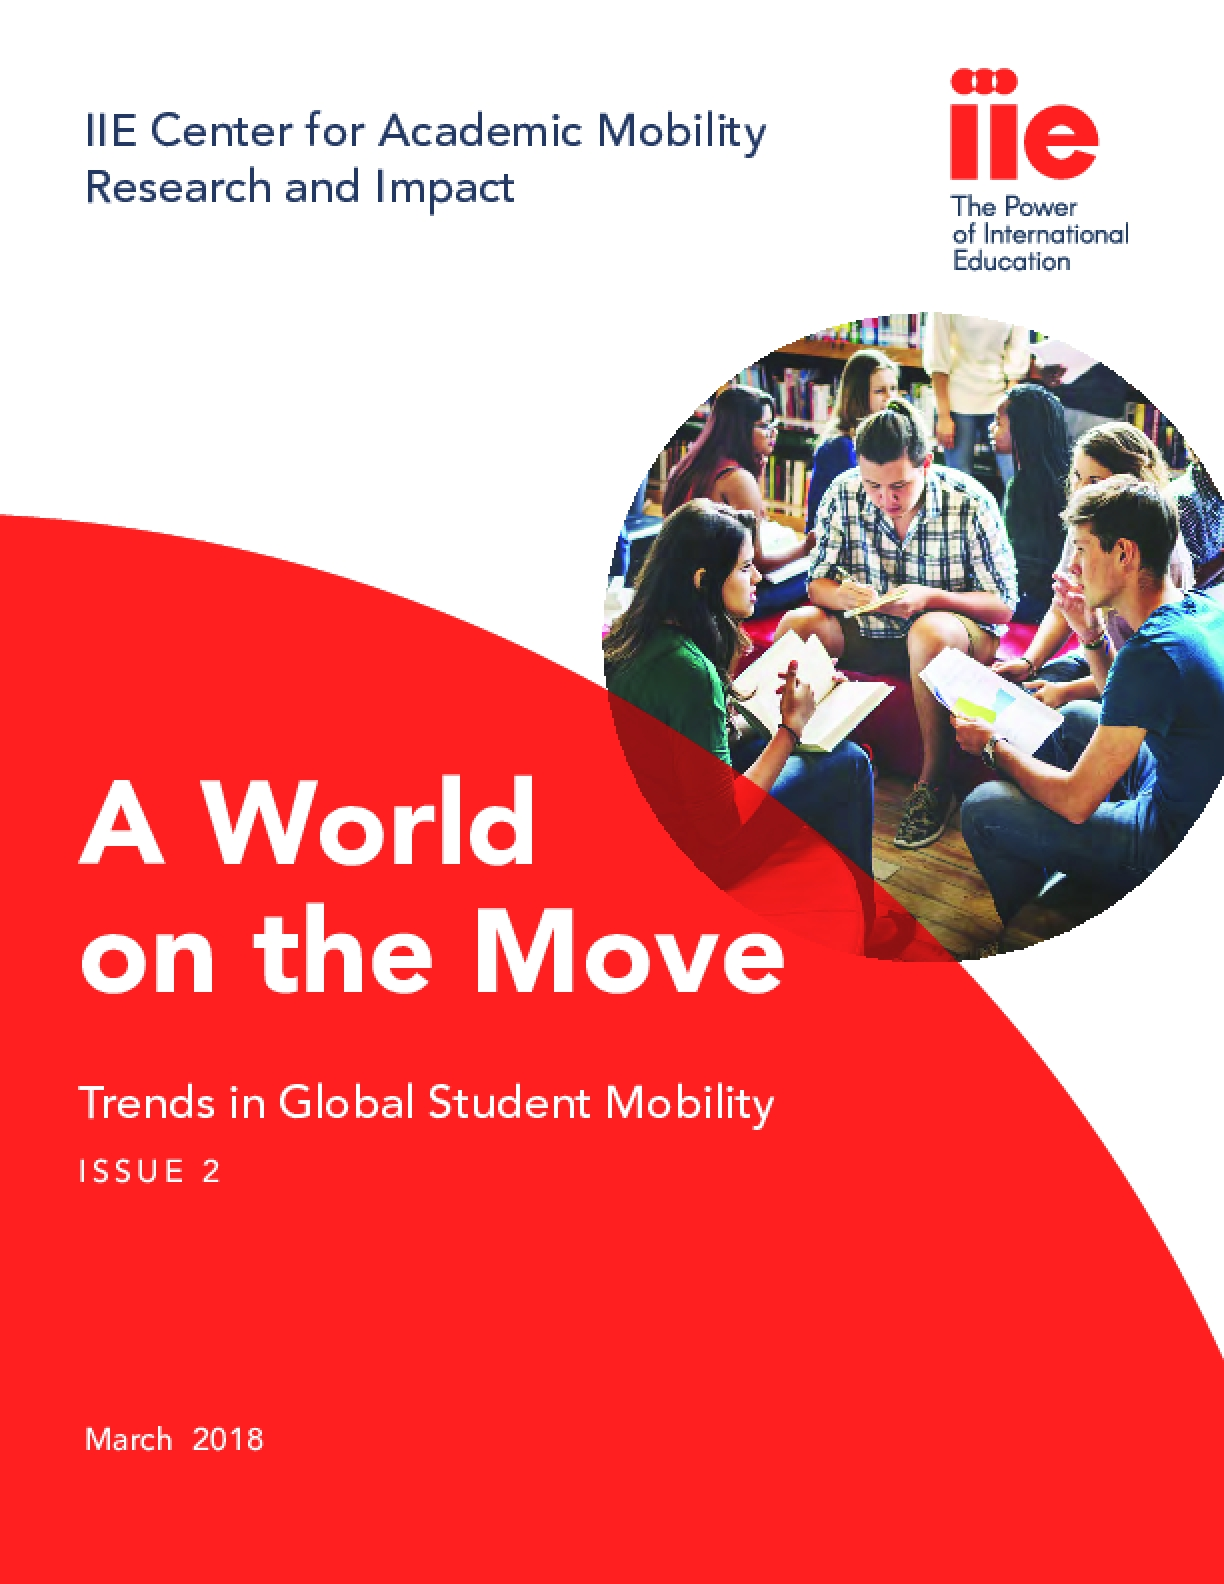 A World on the Move: Trends in Global Student Mobility - Issue 2